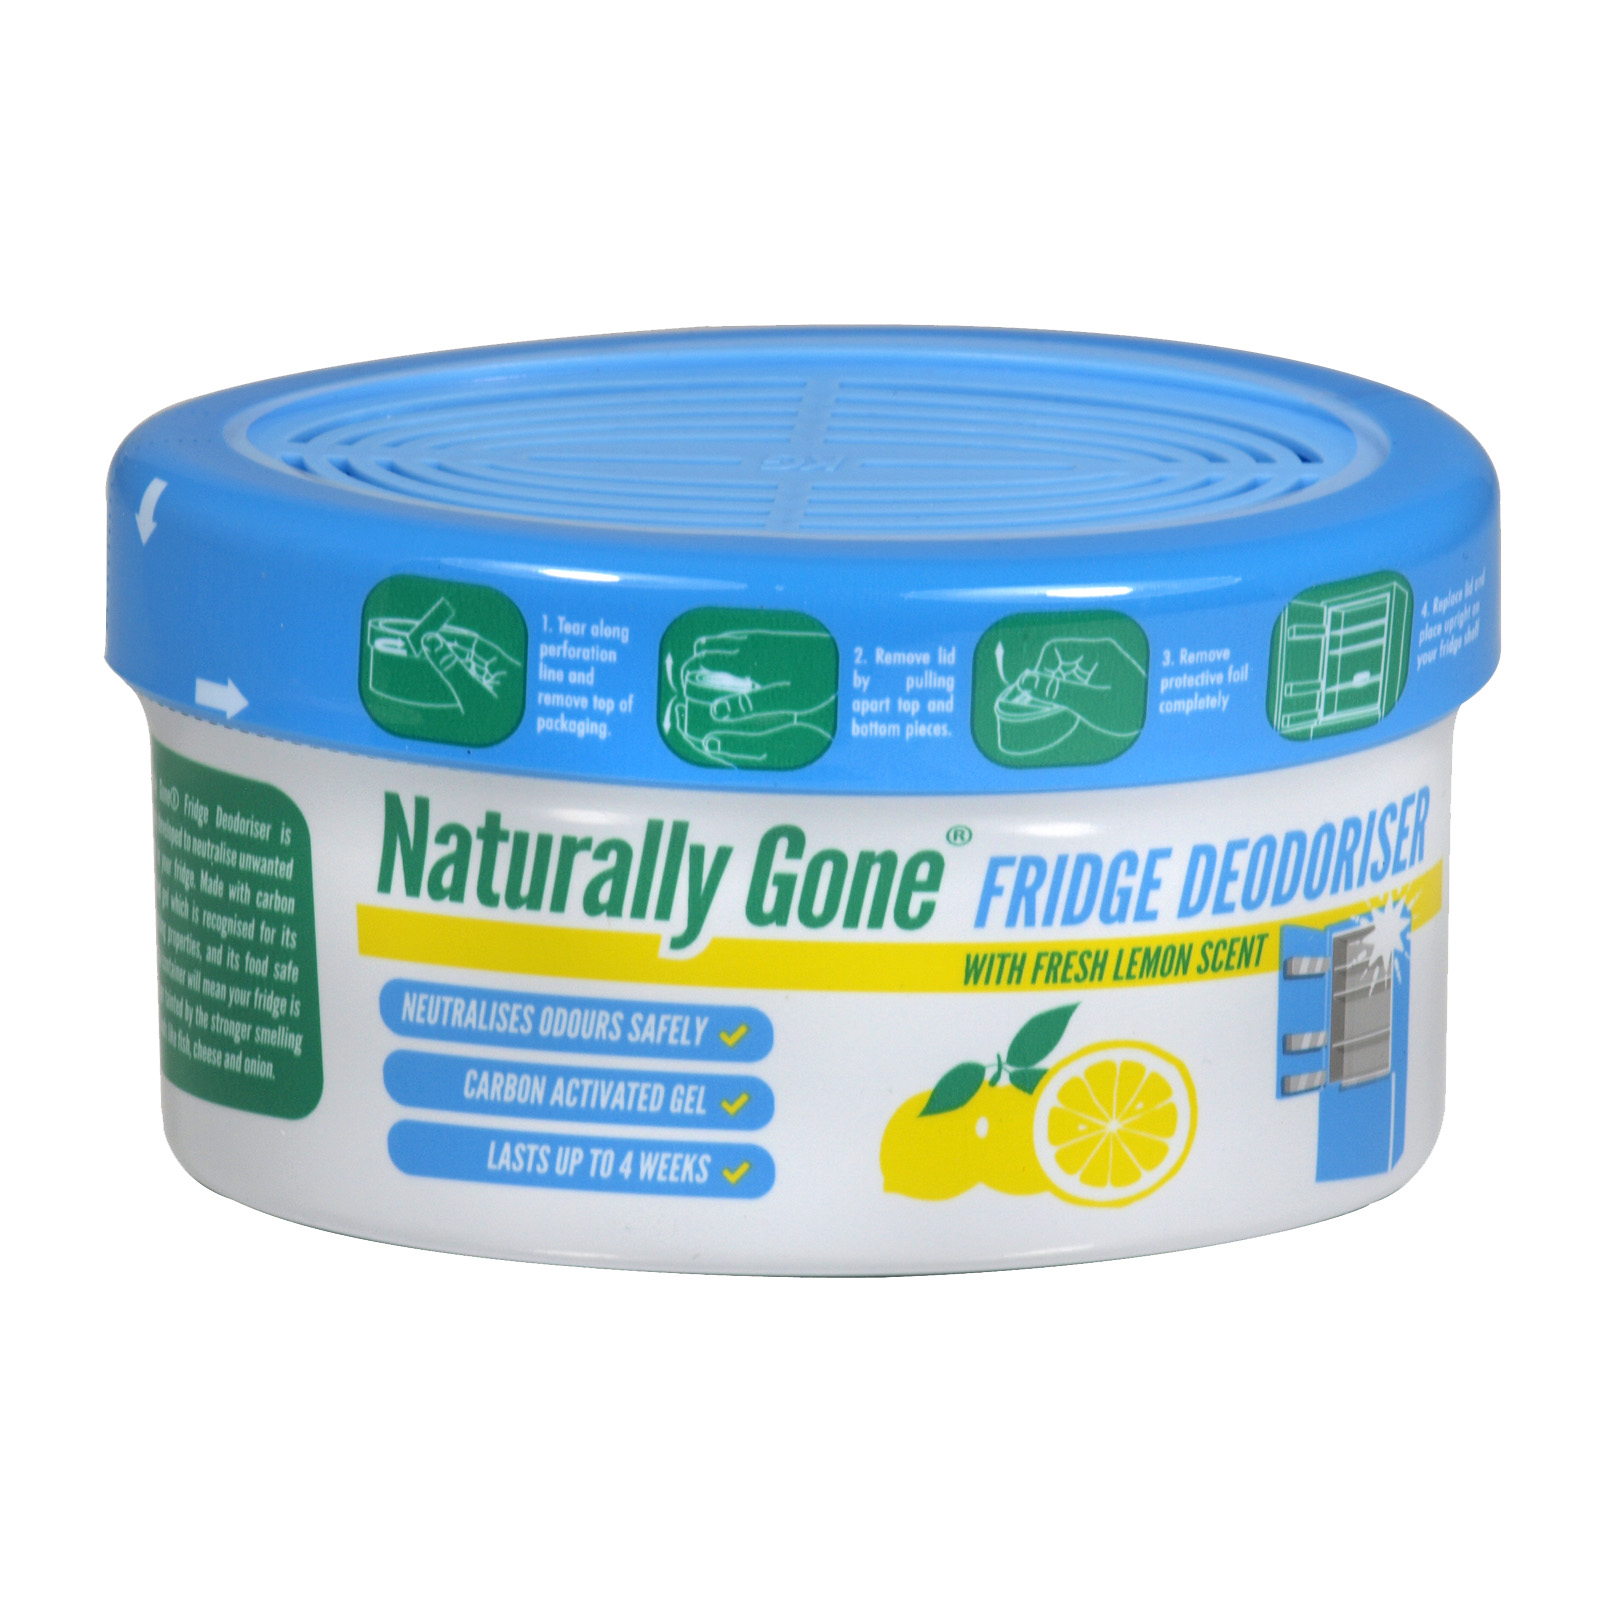 AIRPURE NATURALLY GONE FRIDGE DEODORISER 150GM LEMON FRESH X12